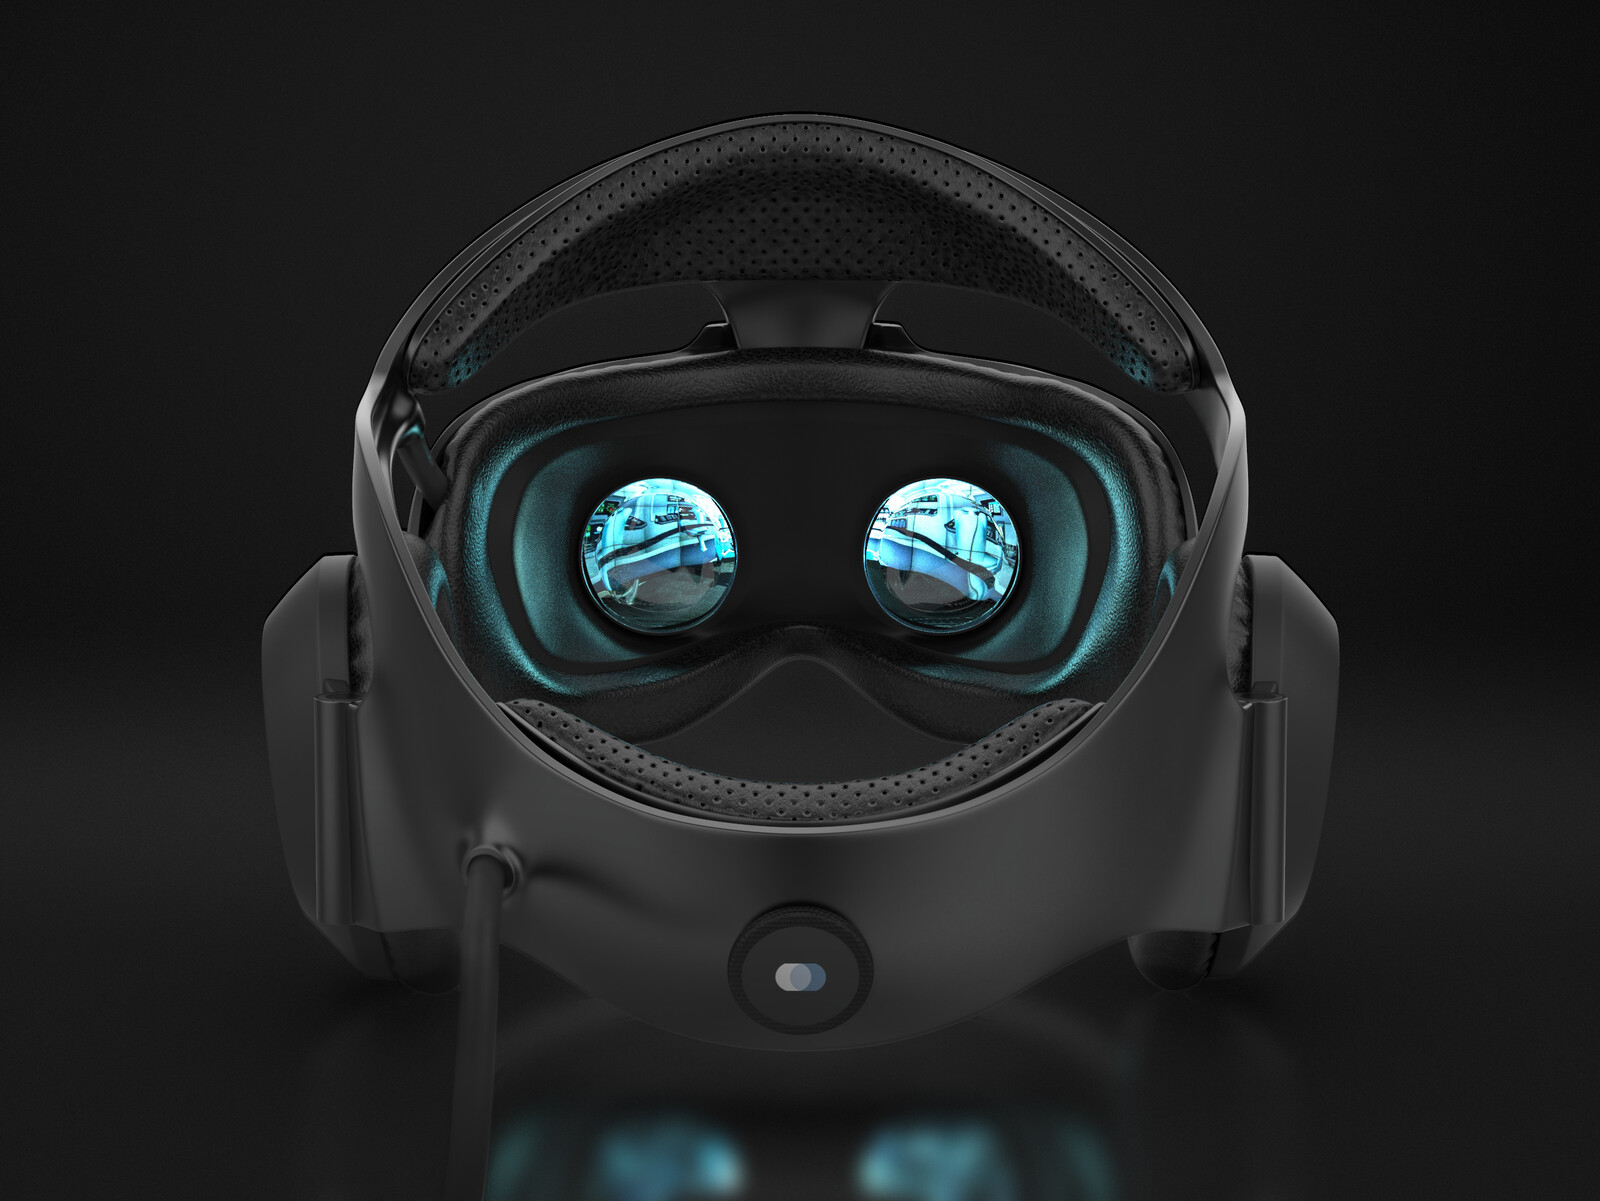 XR Headset Concept